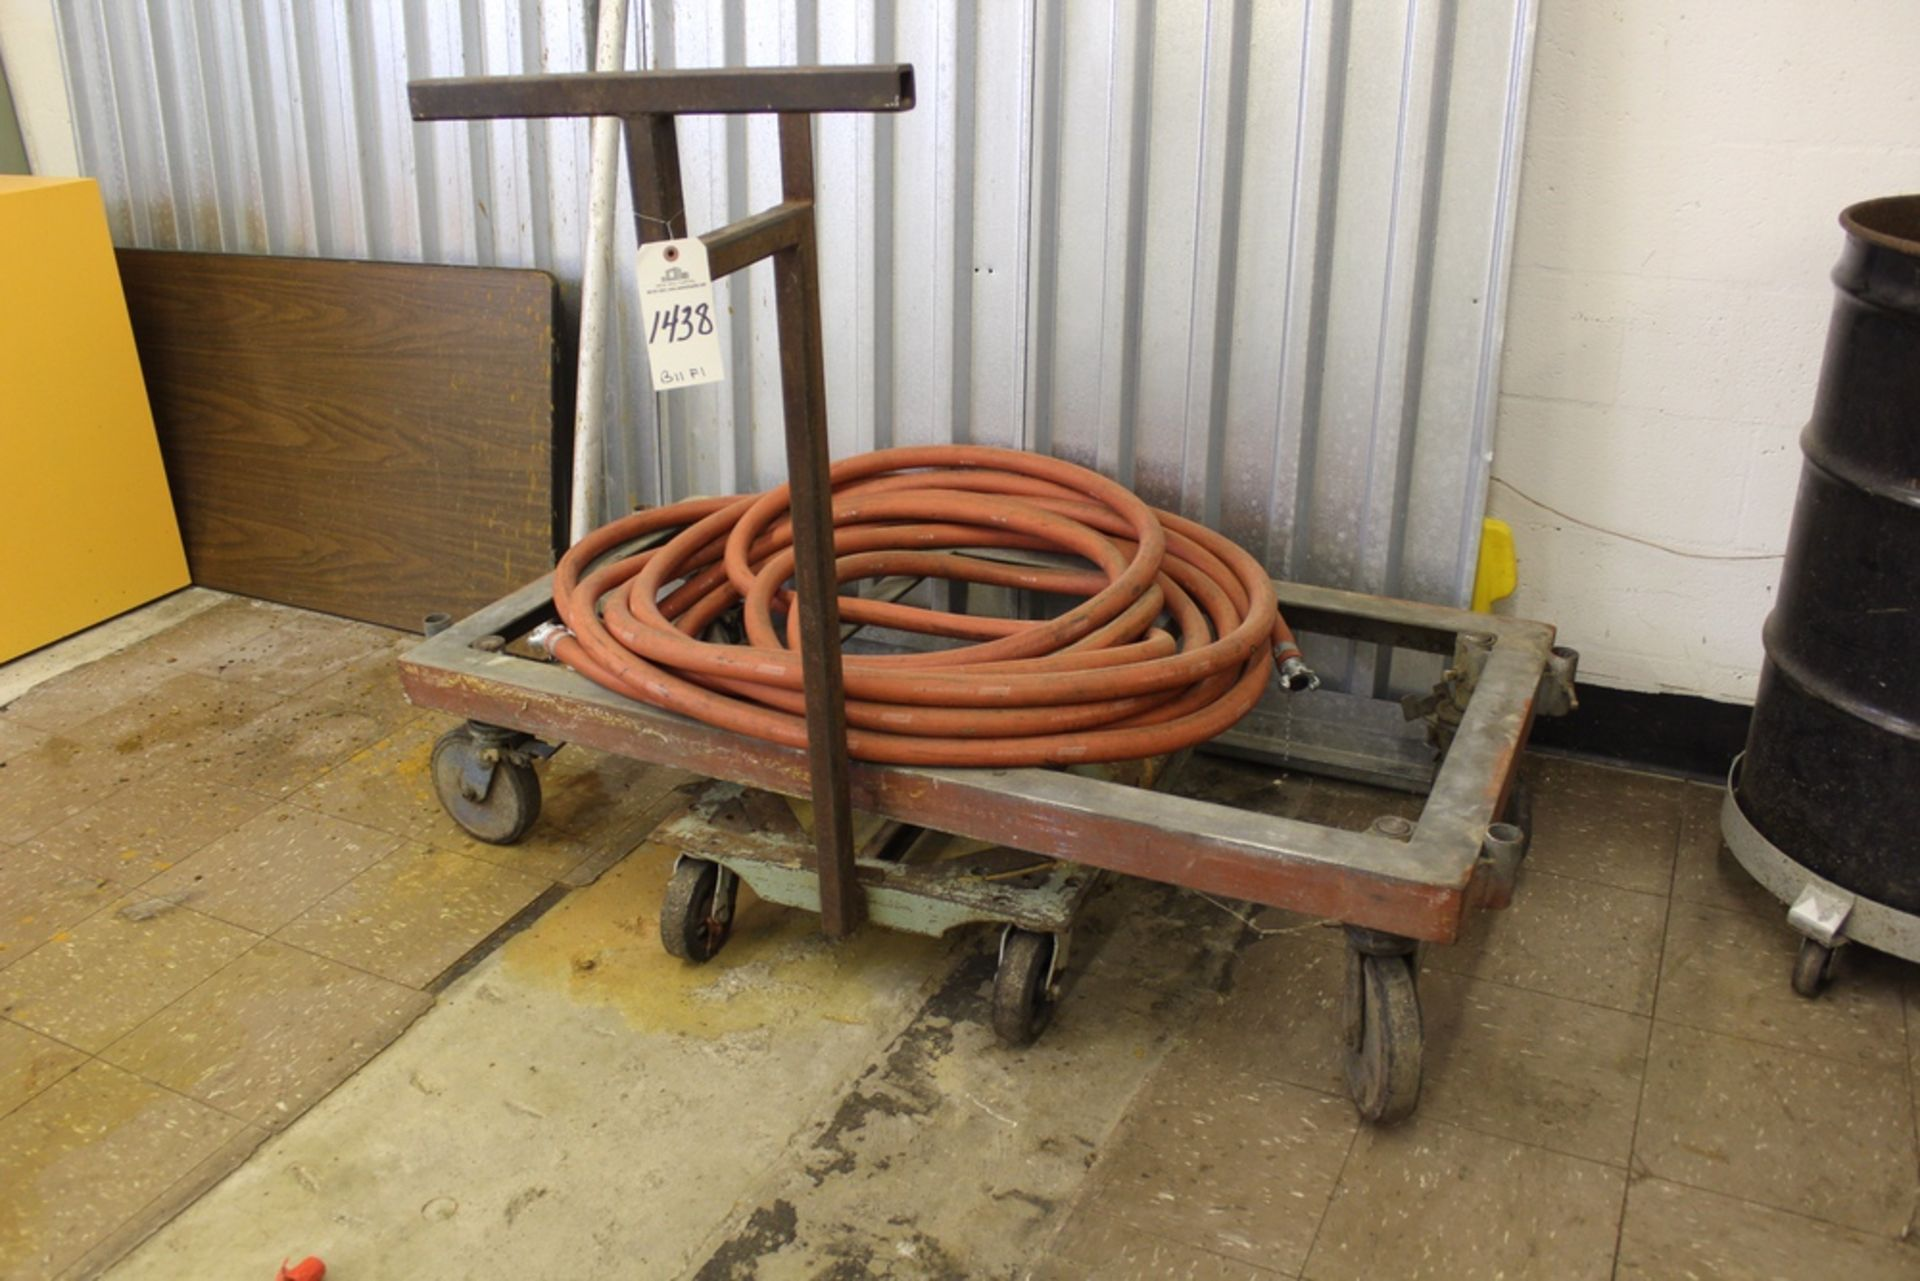 Lot 1438 - Lot of Sanitation Supplies | Rig Fee: Hand Carry or Contact Rigger